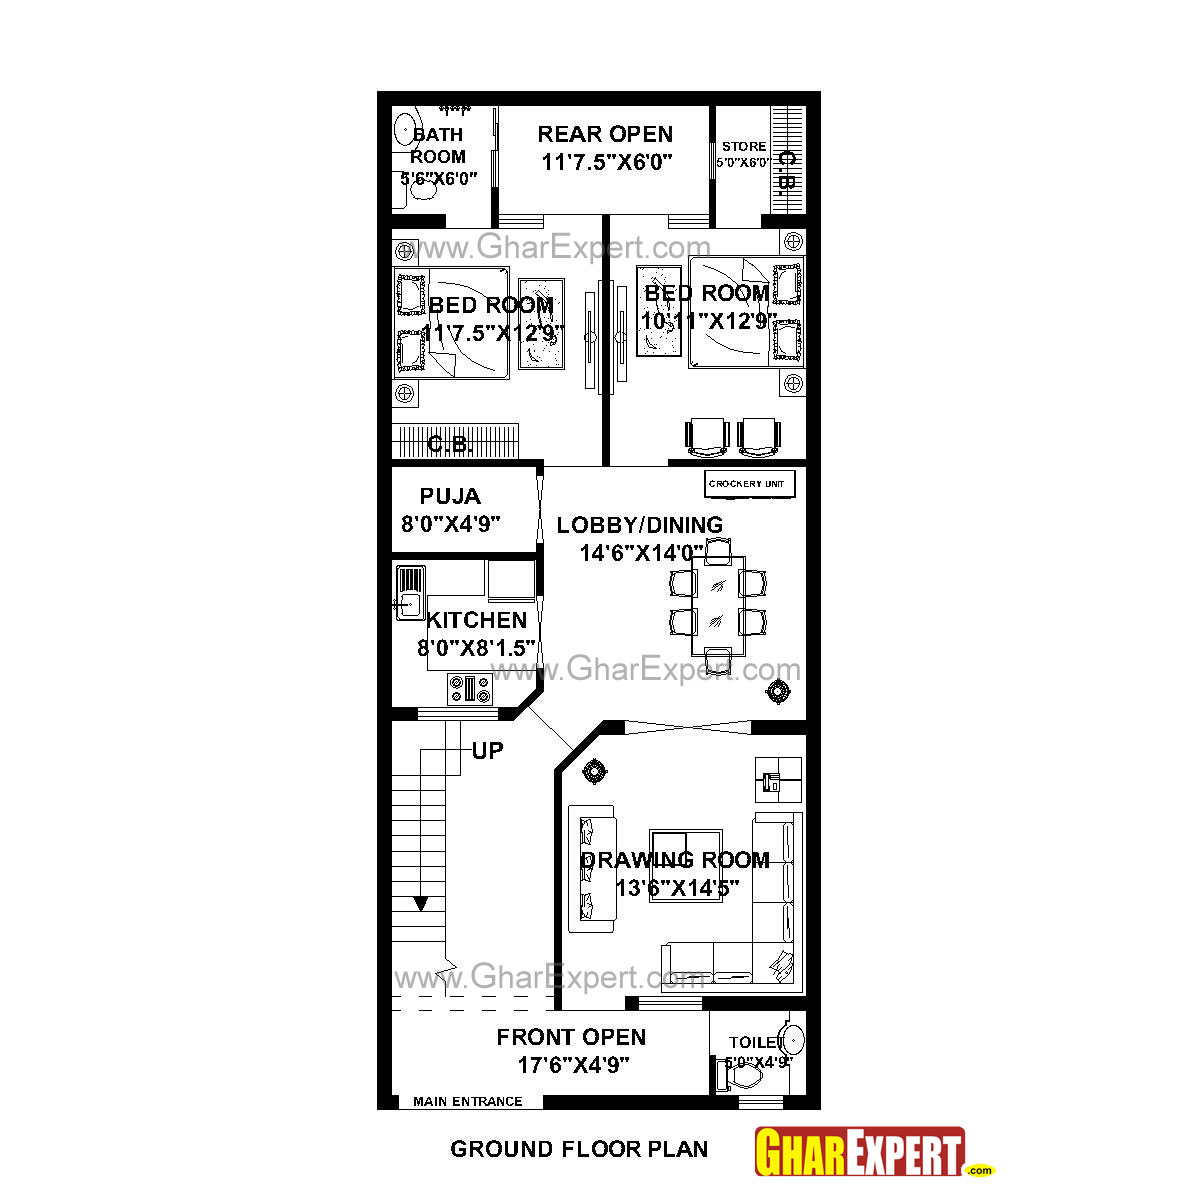 House Plan For 33 Feet By 40 Feet Plot Plot Size 147: House Plan For 24 Feet By 56 Feet Plot (Plot Size 149